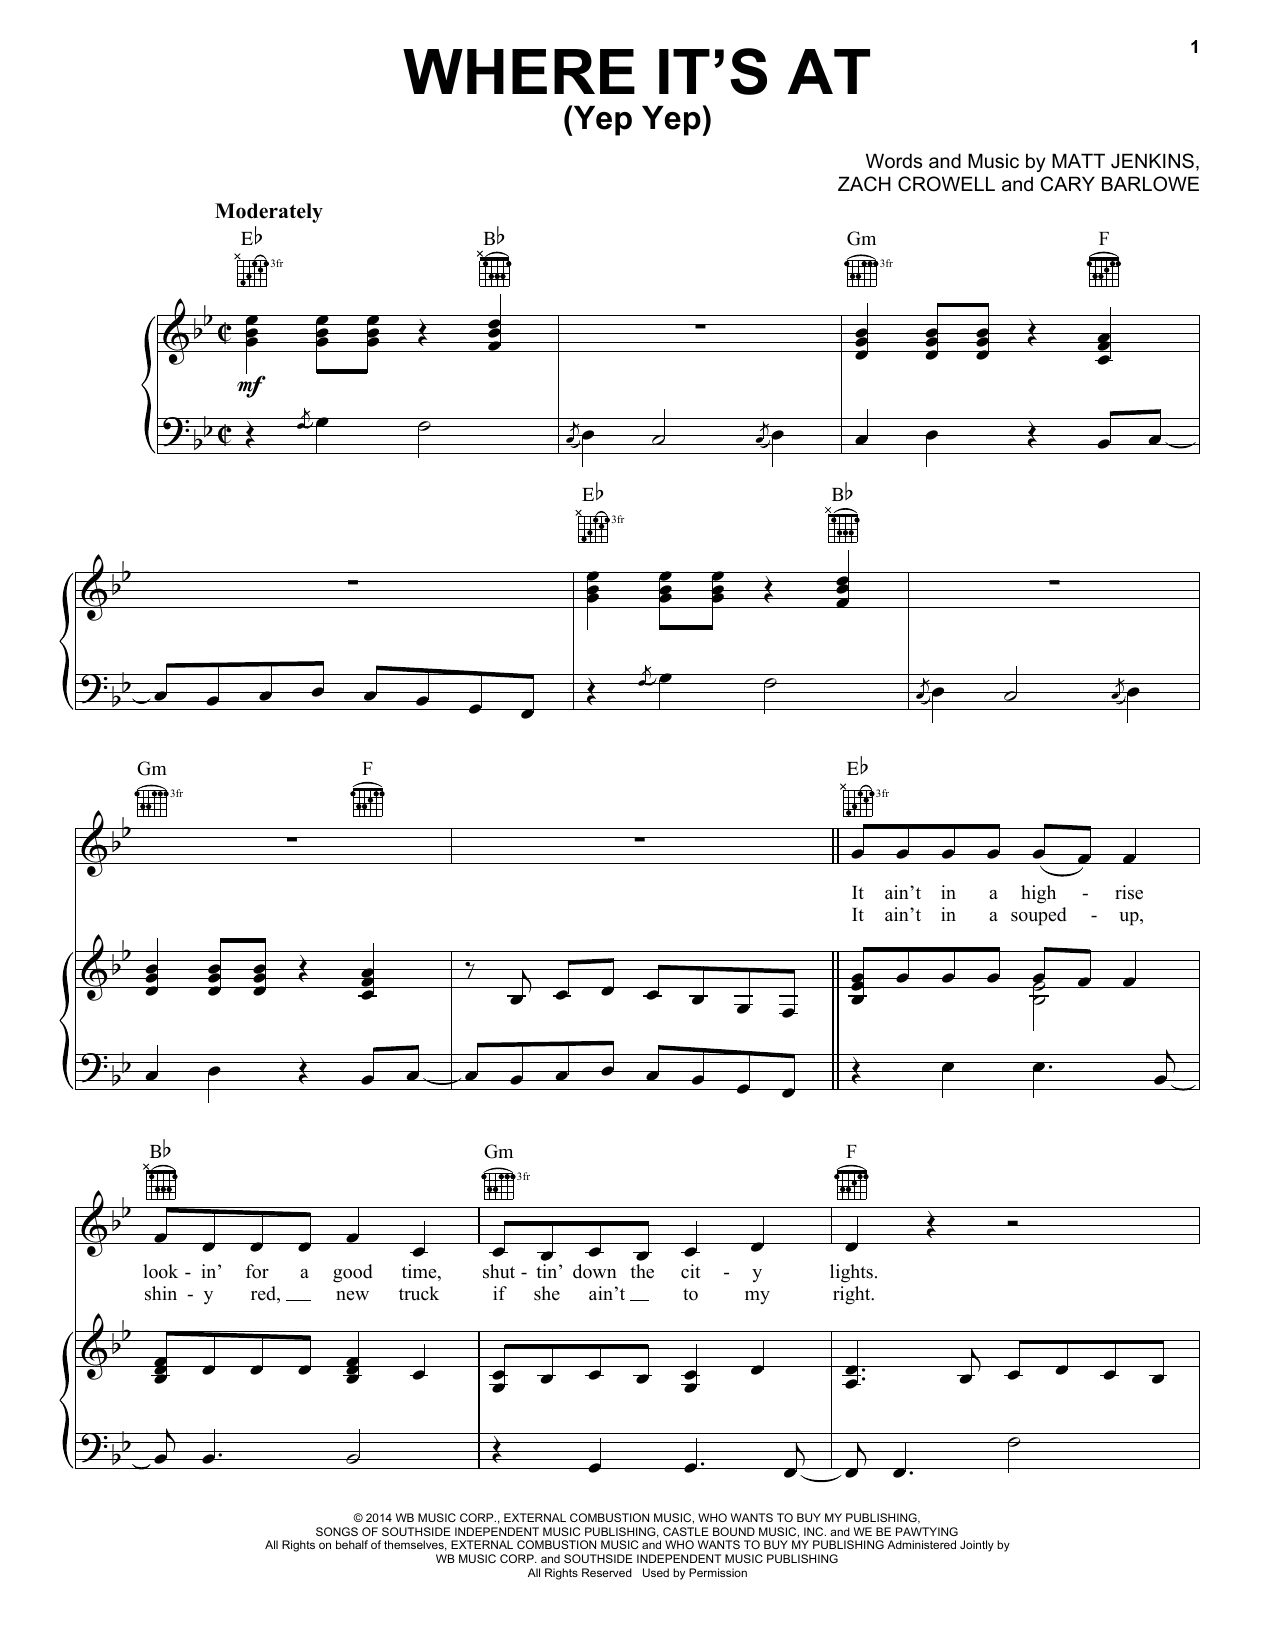 Where It's At (Yep Yep) Sheet Music